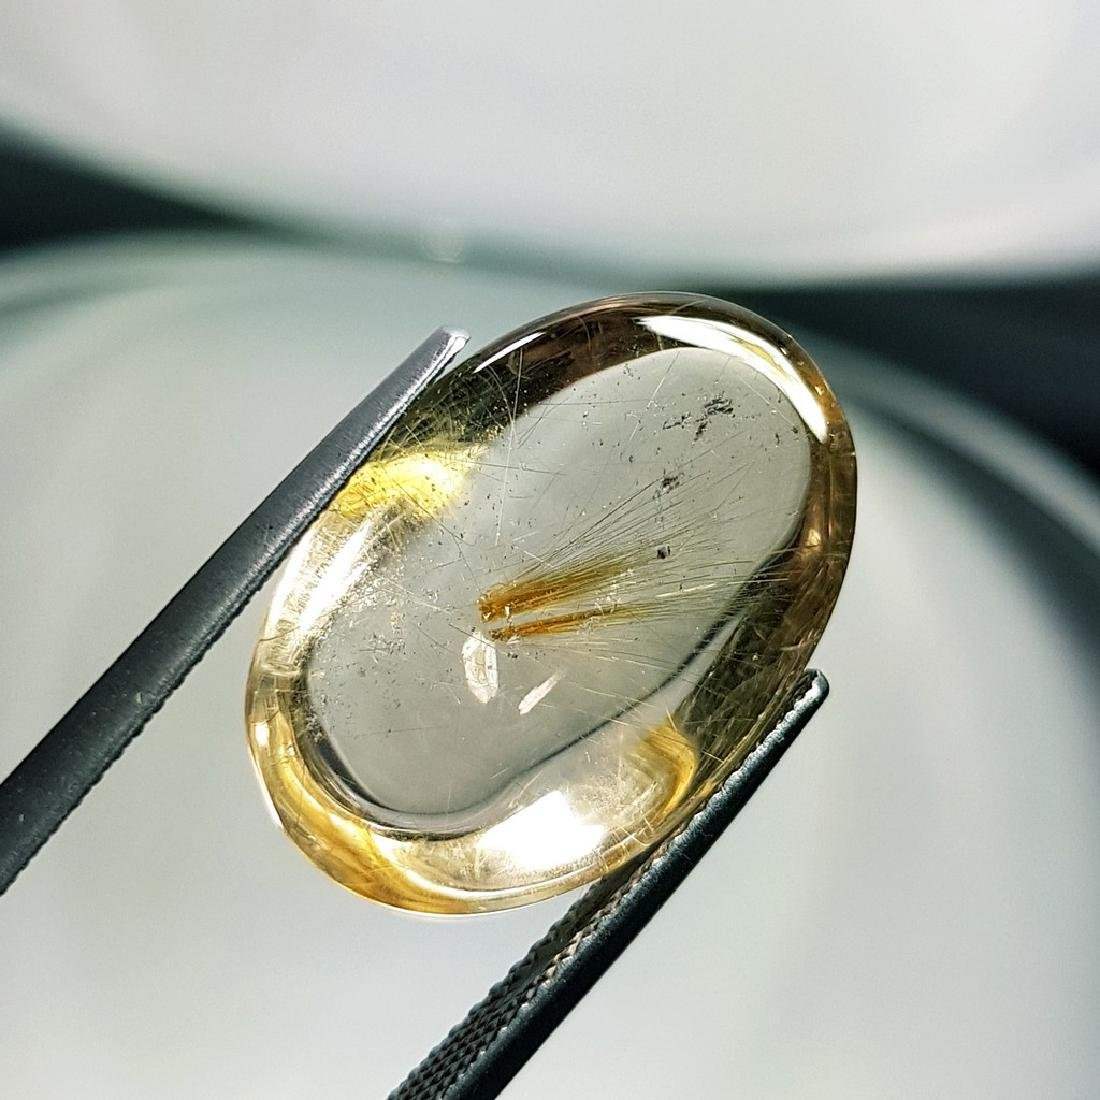 Golden Rutile Quartz - 16.16 ct - 3